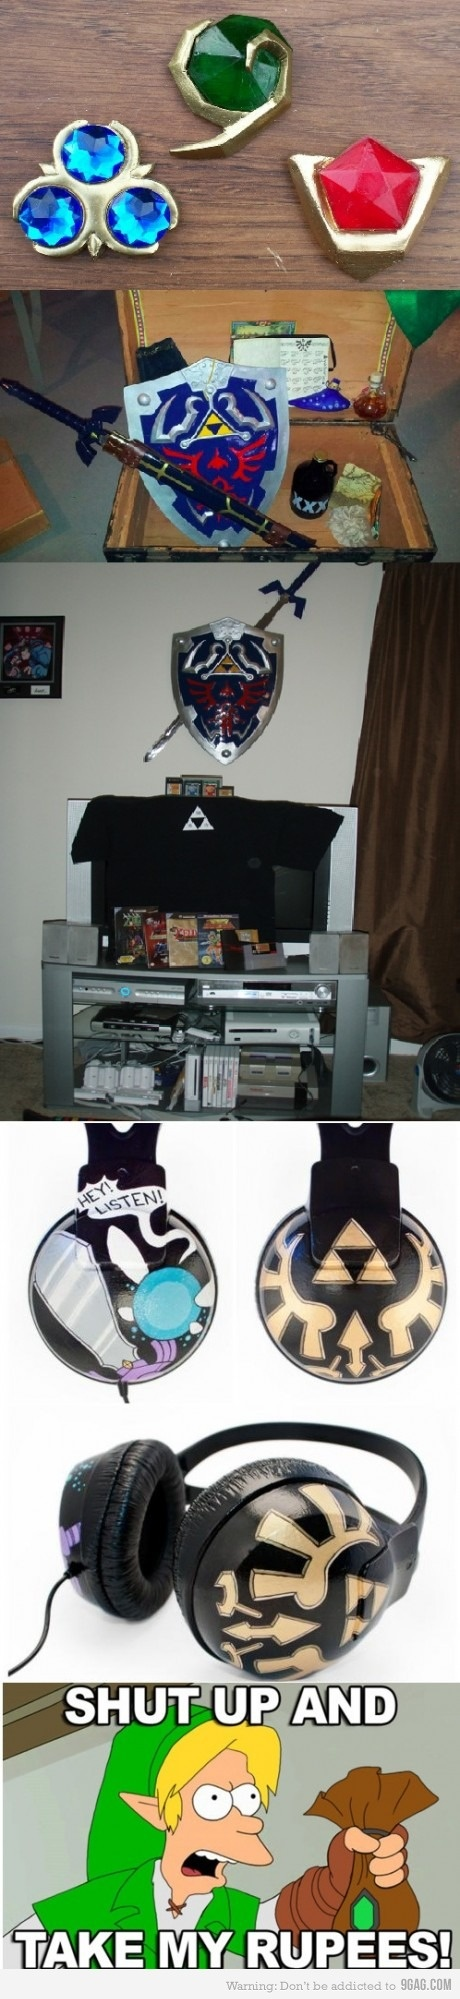 how nerdy would it be of me to have all of these things?